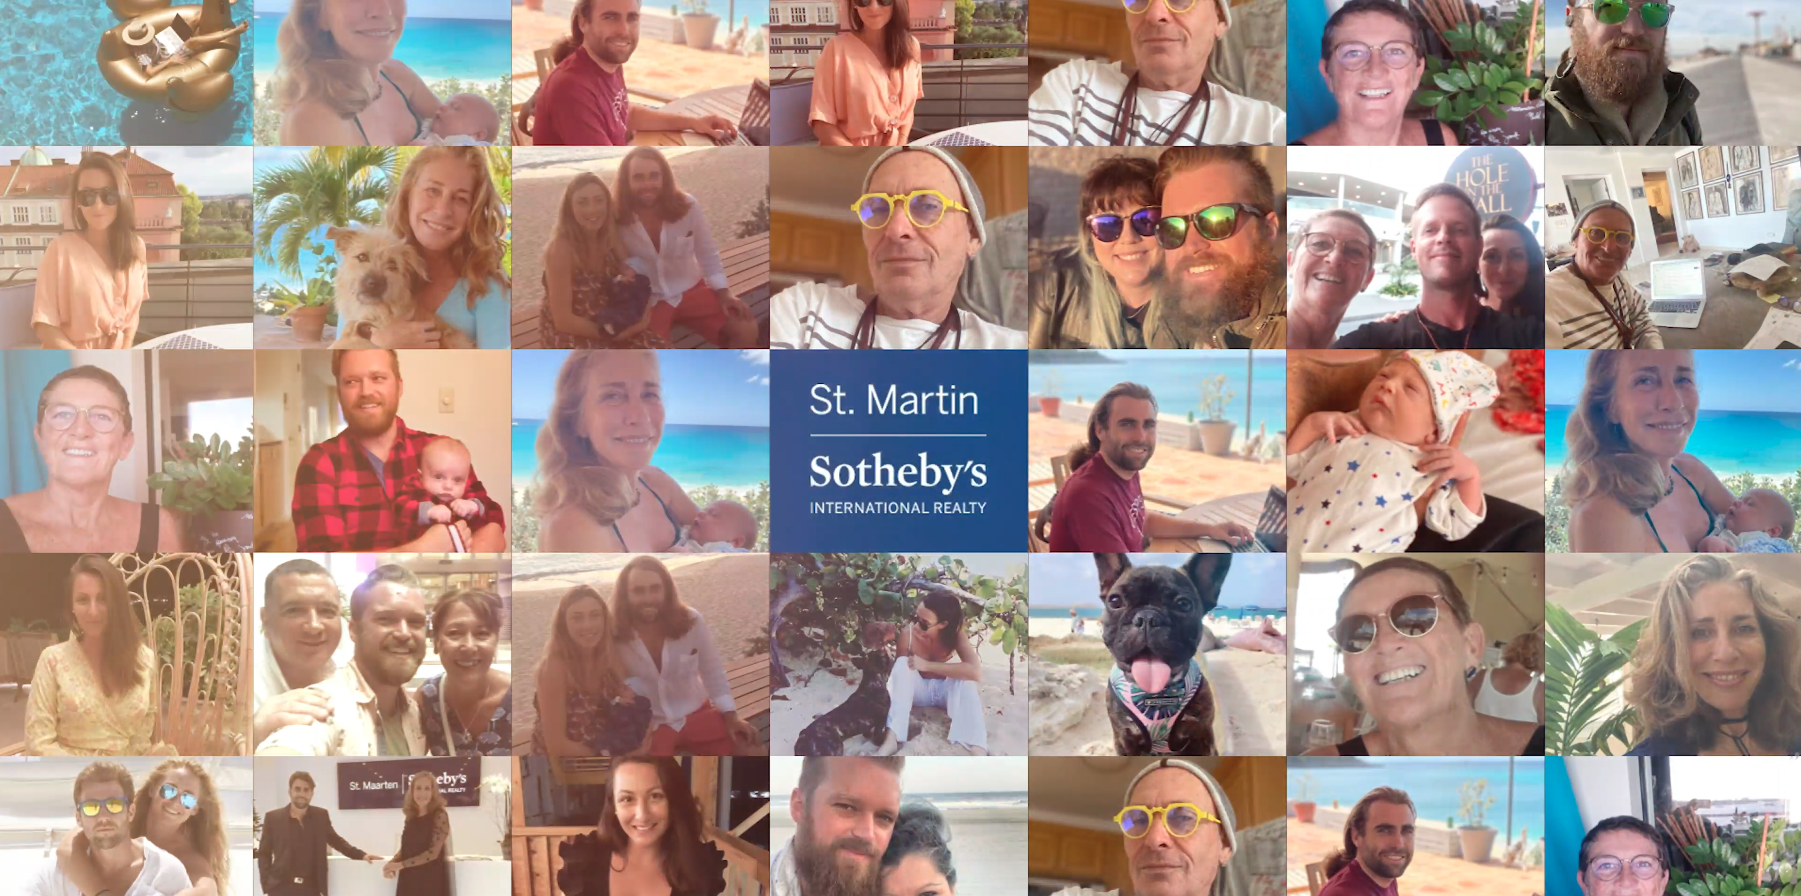 All in this Together from St. Martin Sotheby's Realty